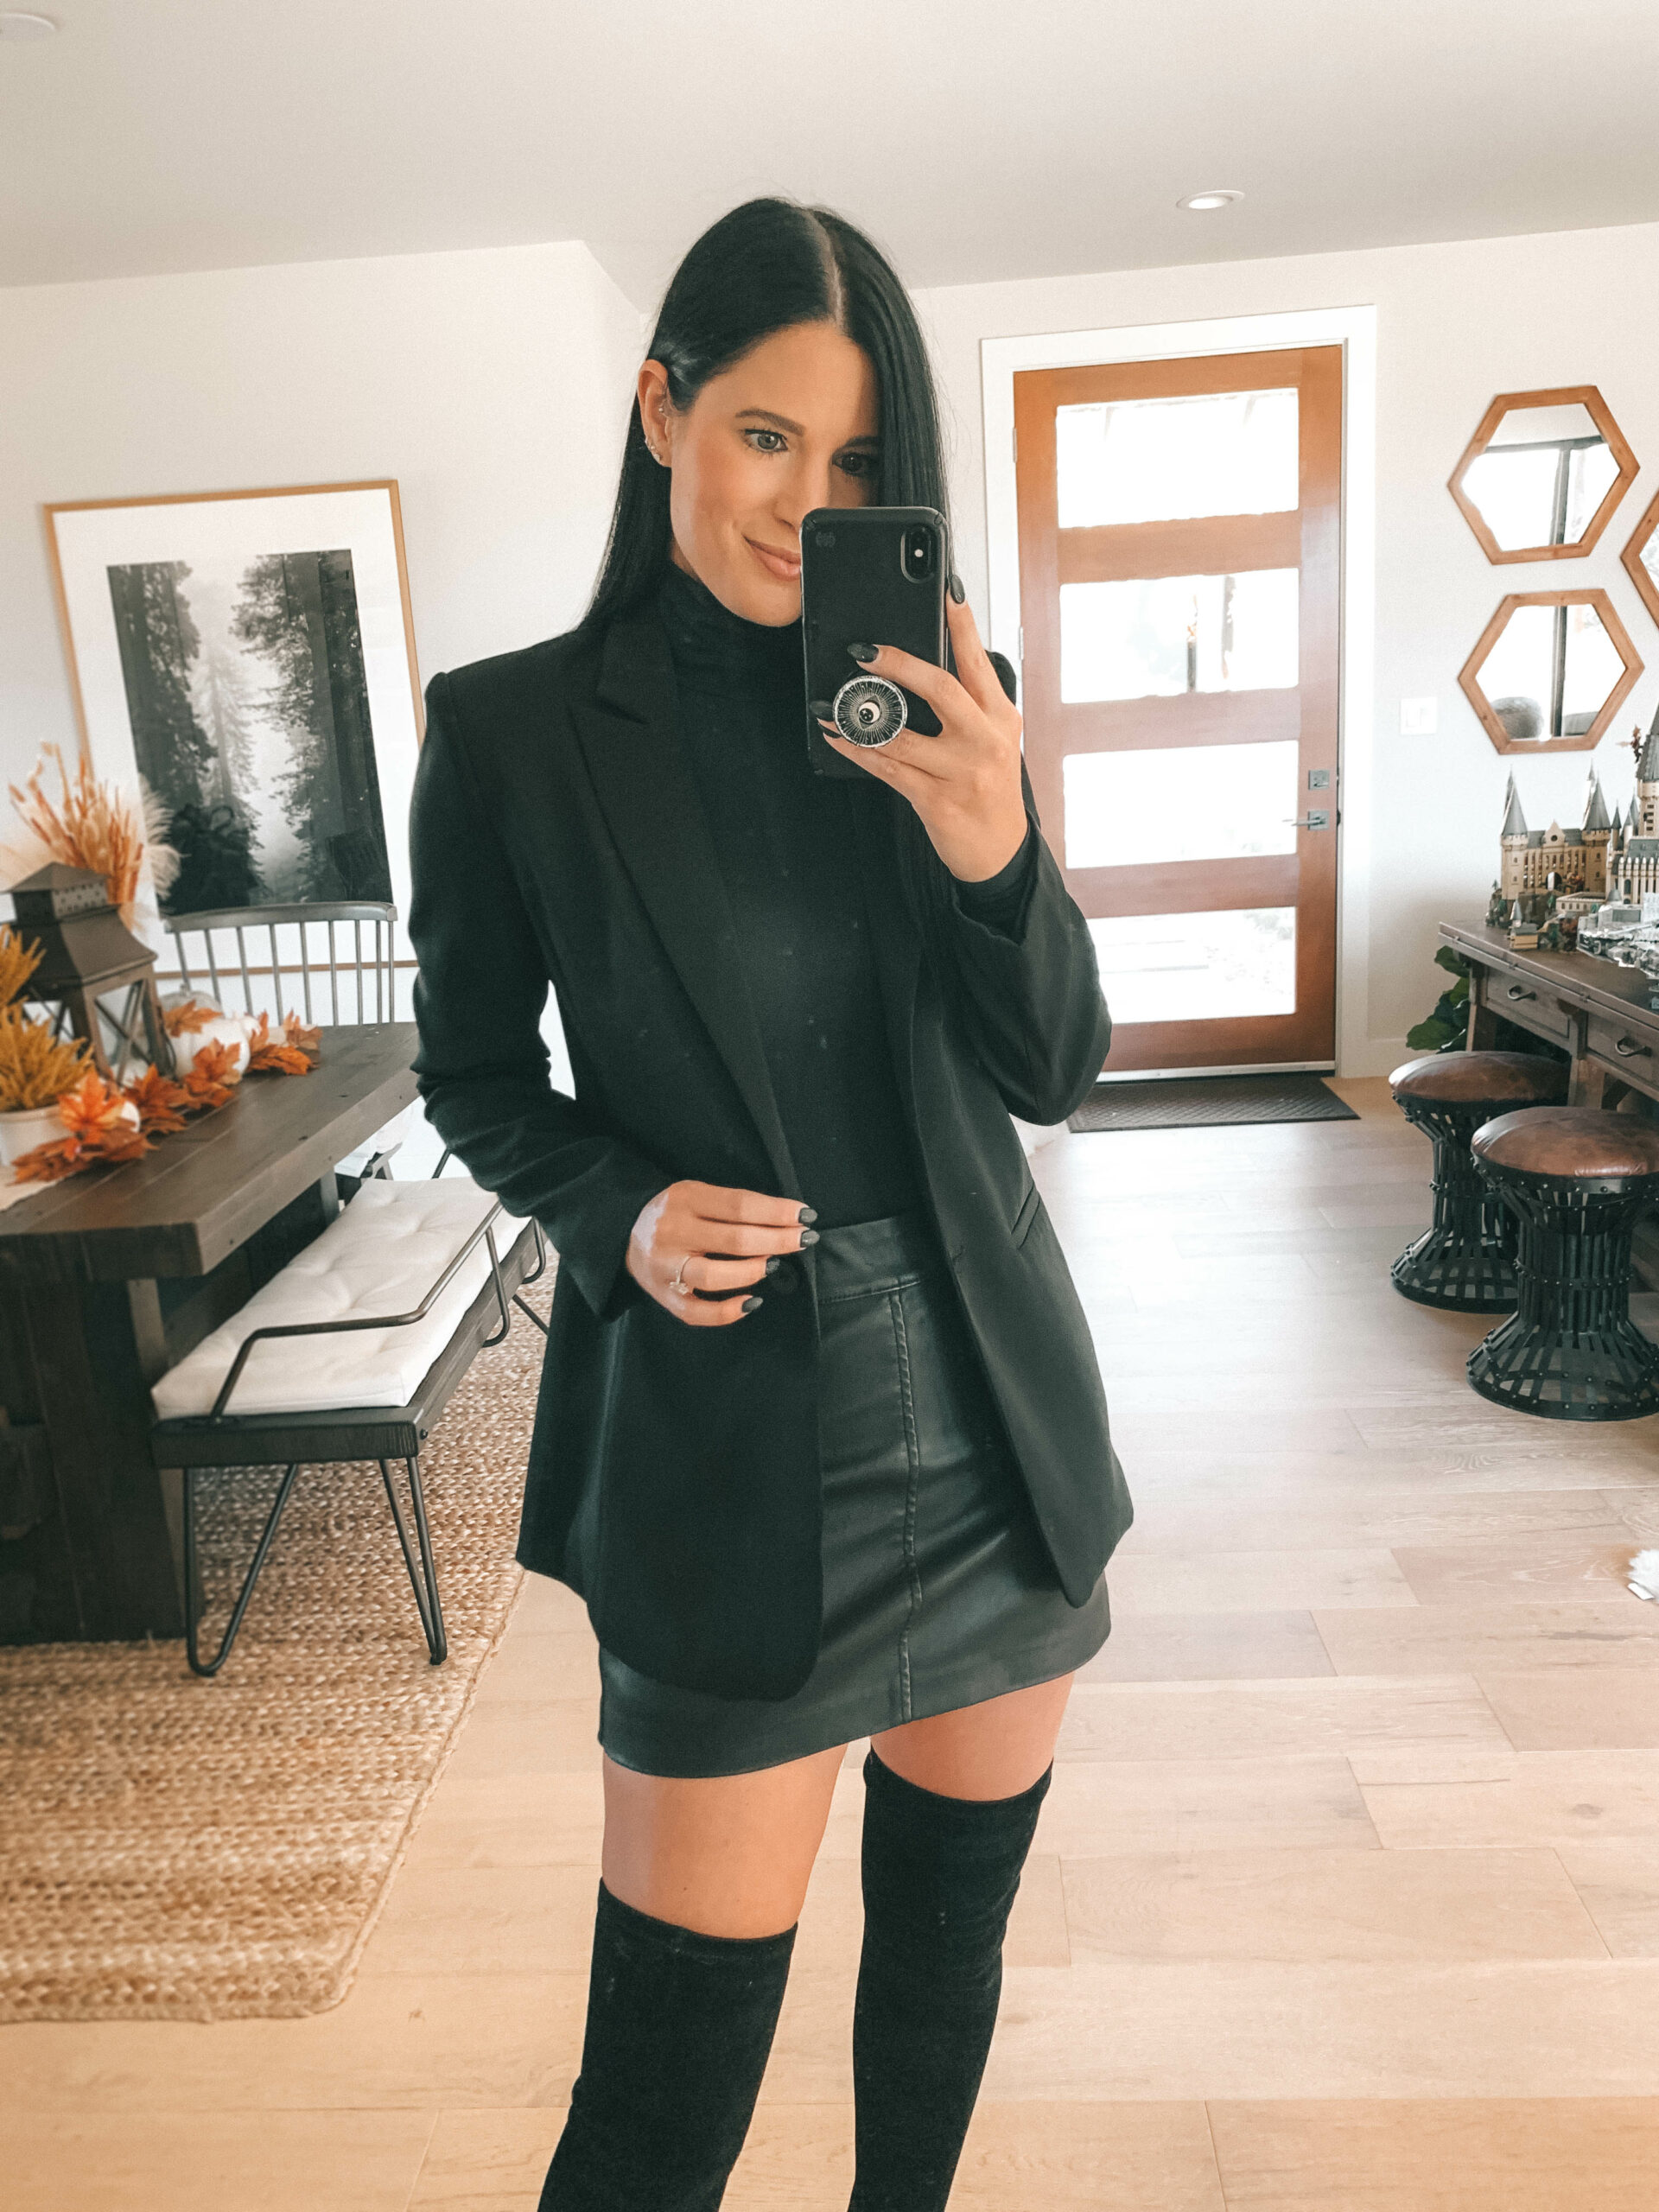 Spanx Bodysuit by popular Austin fashion blog, Dressed to Kill: image of a woman wearing a black long sleeve Spanx bodysuit with a black blazer, black faux leather mini skirt, and black over the knee boots.